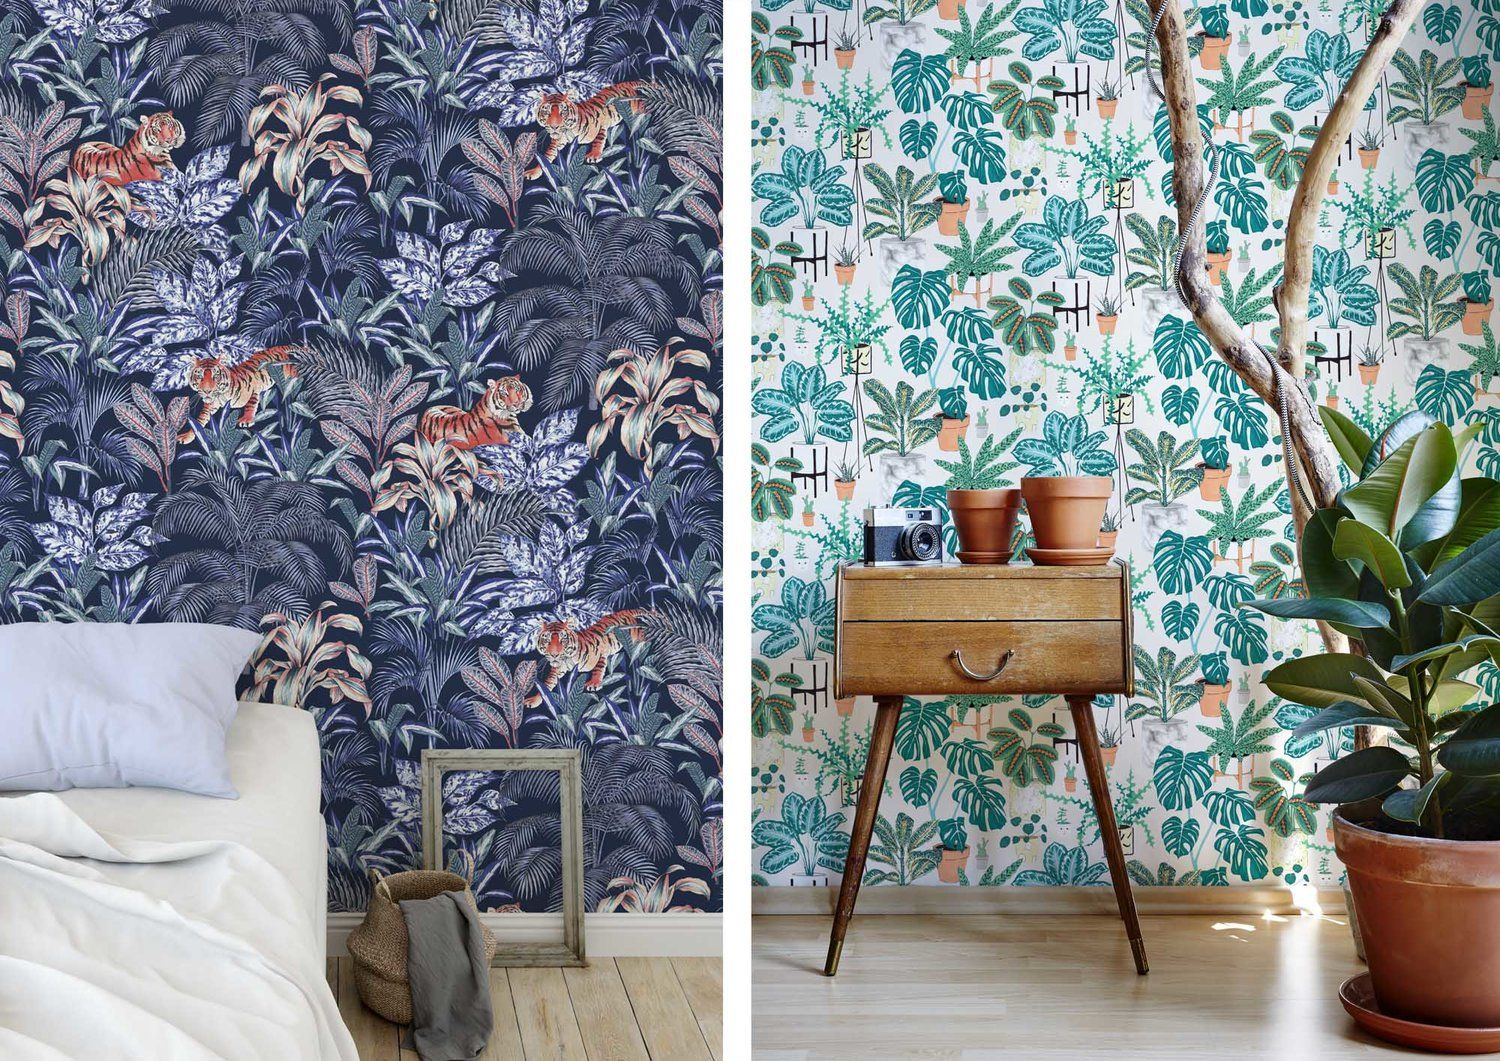 Milton and King wallpaper with a tiger tropical and plant